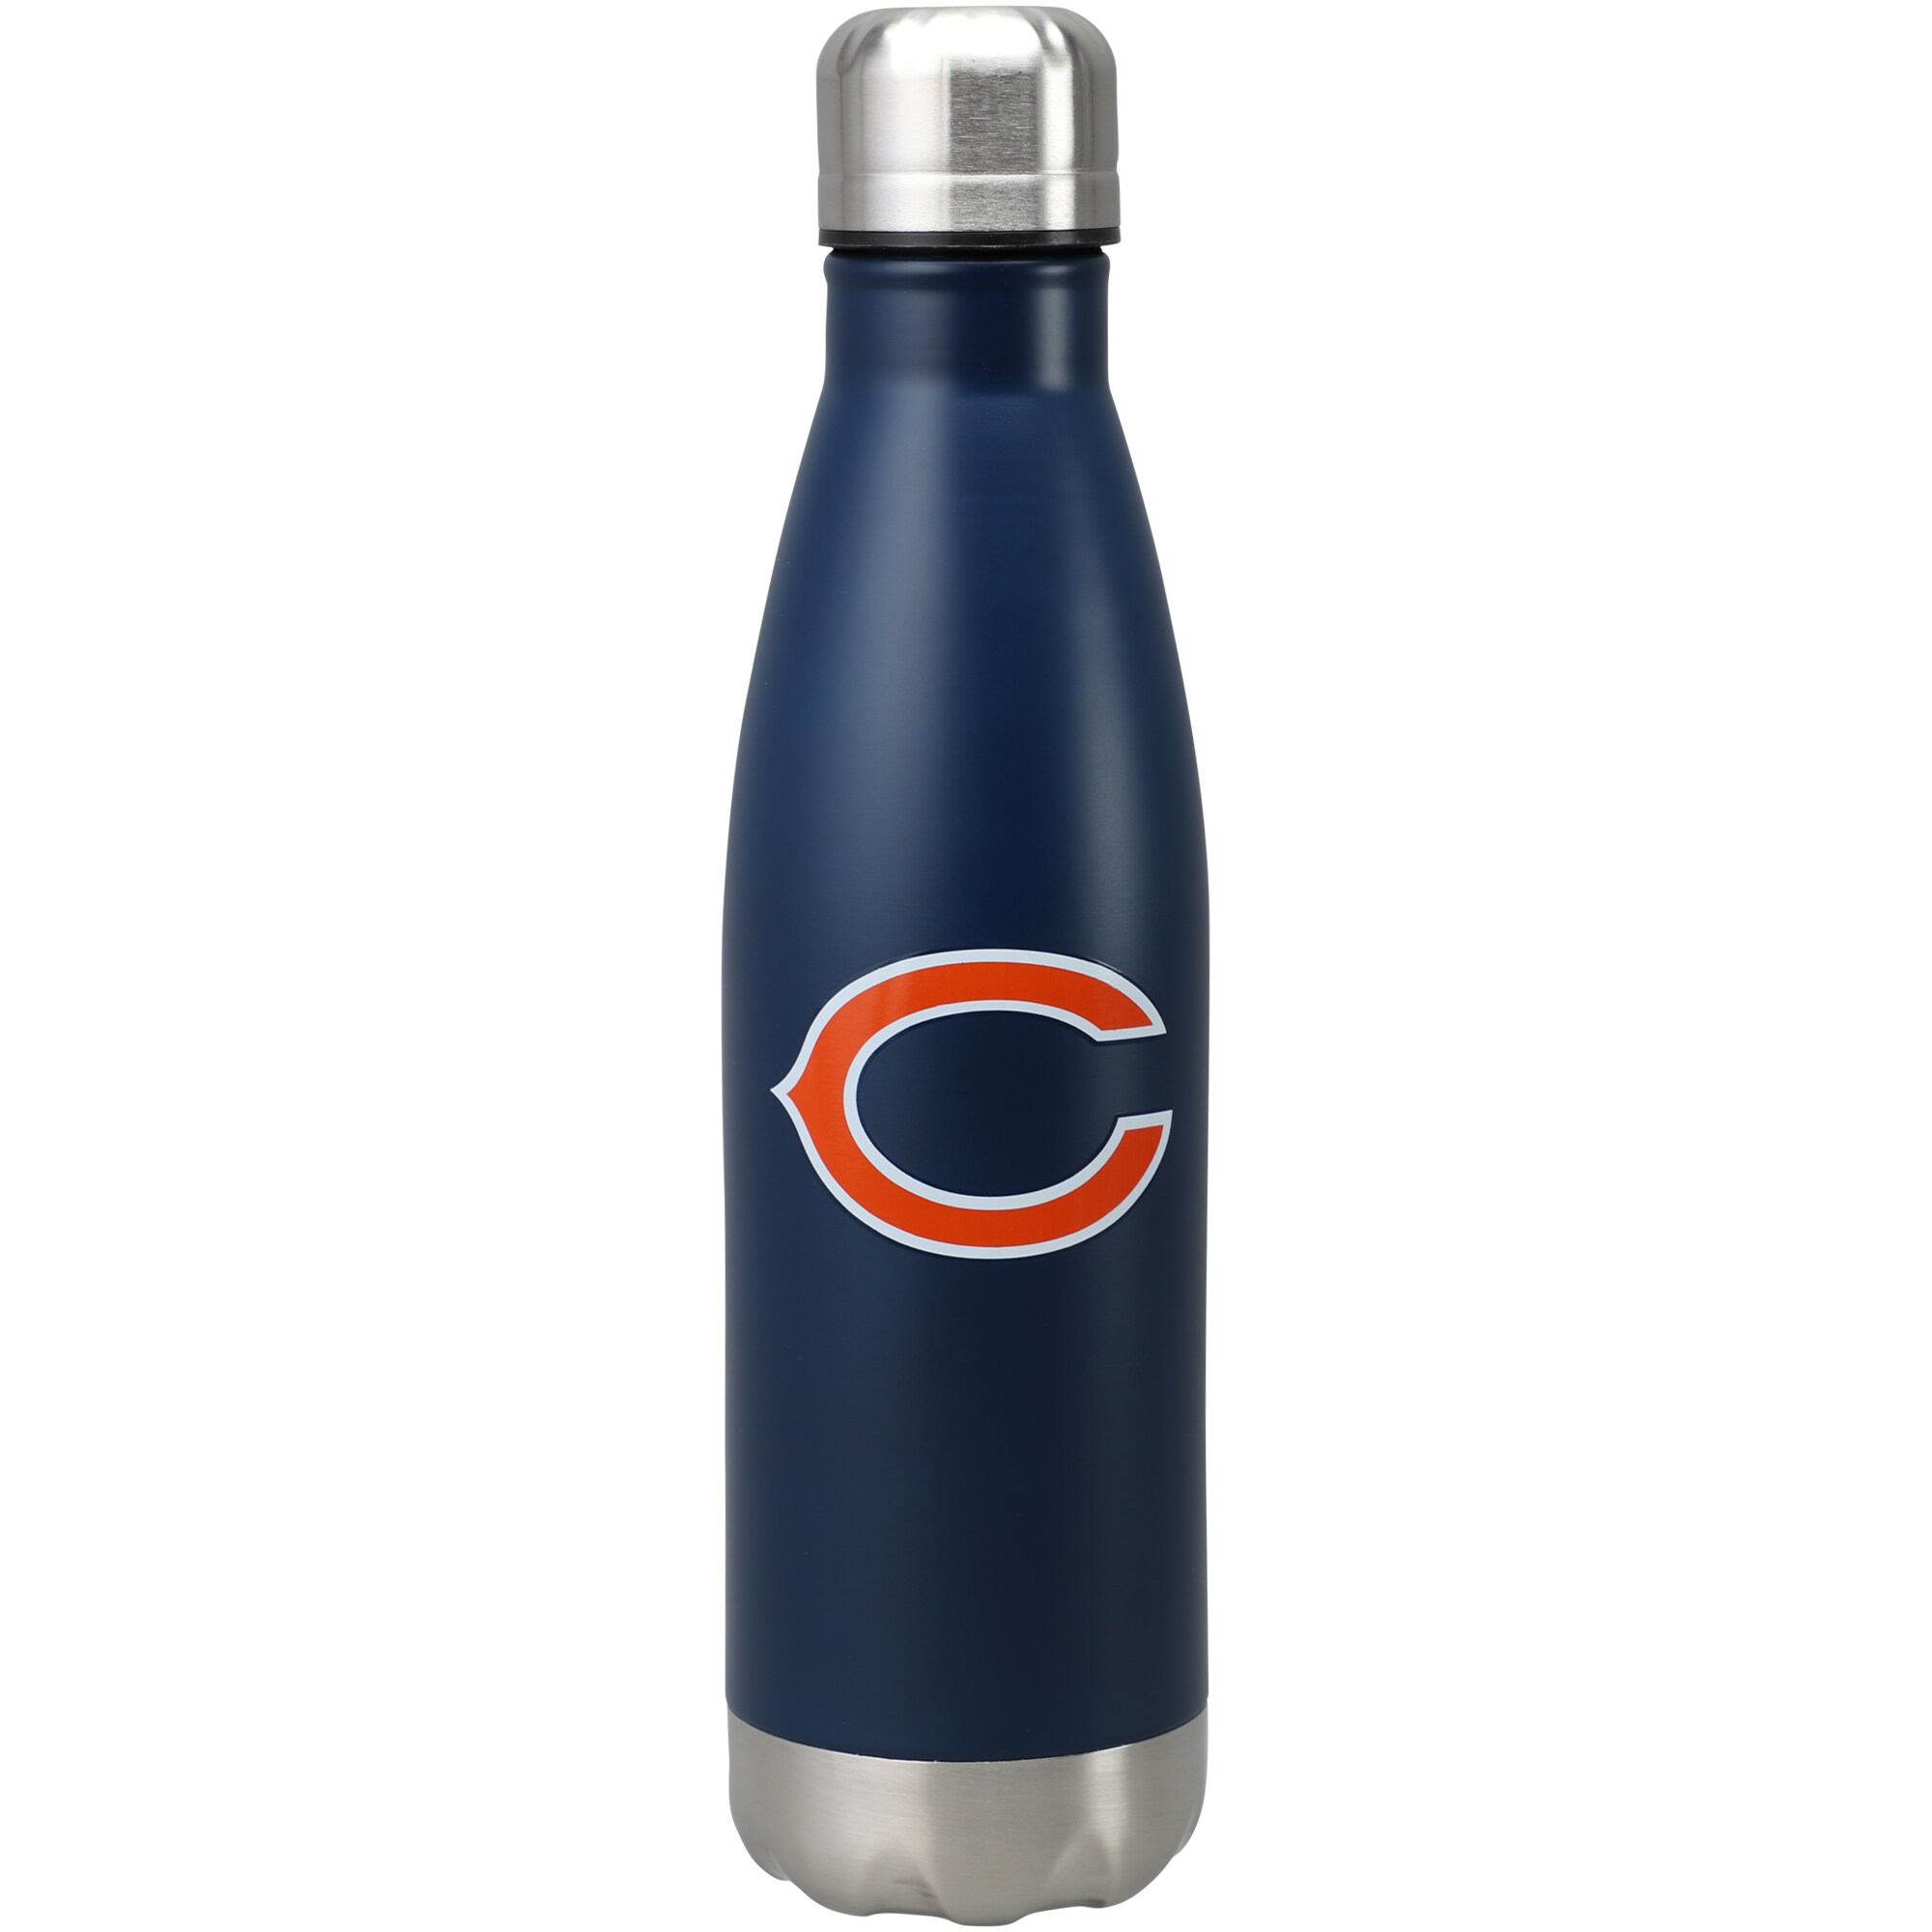 Chicago Bears 17oz. Team Color Stainless Steel Water Bottle